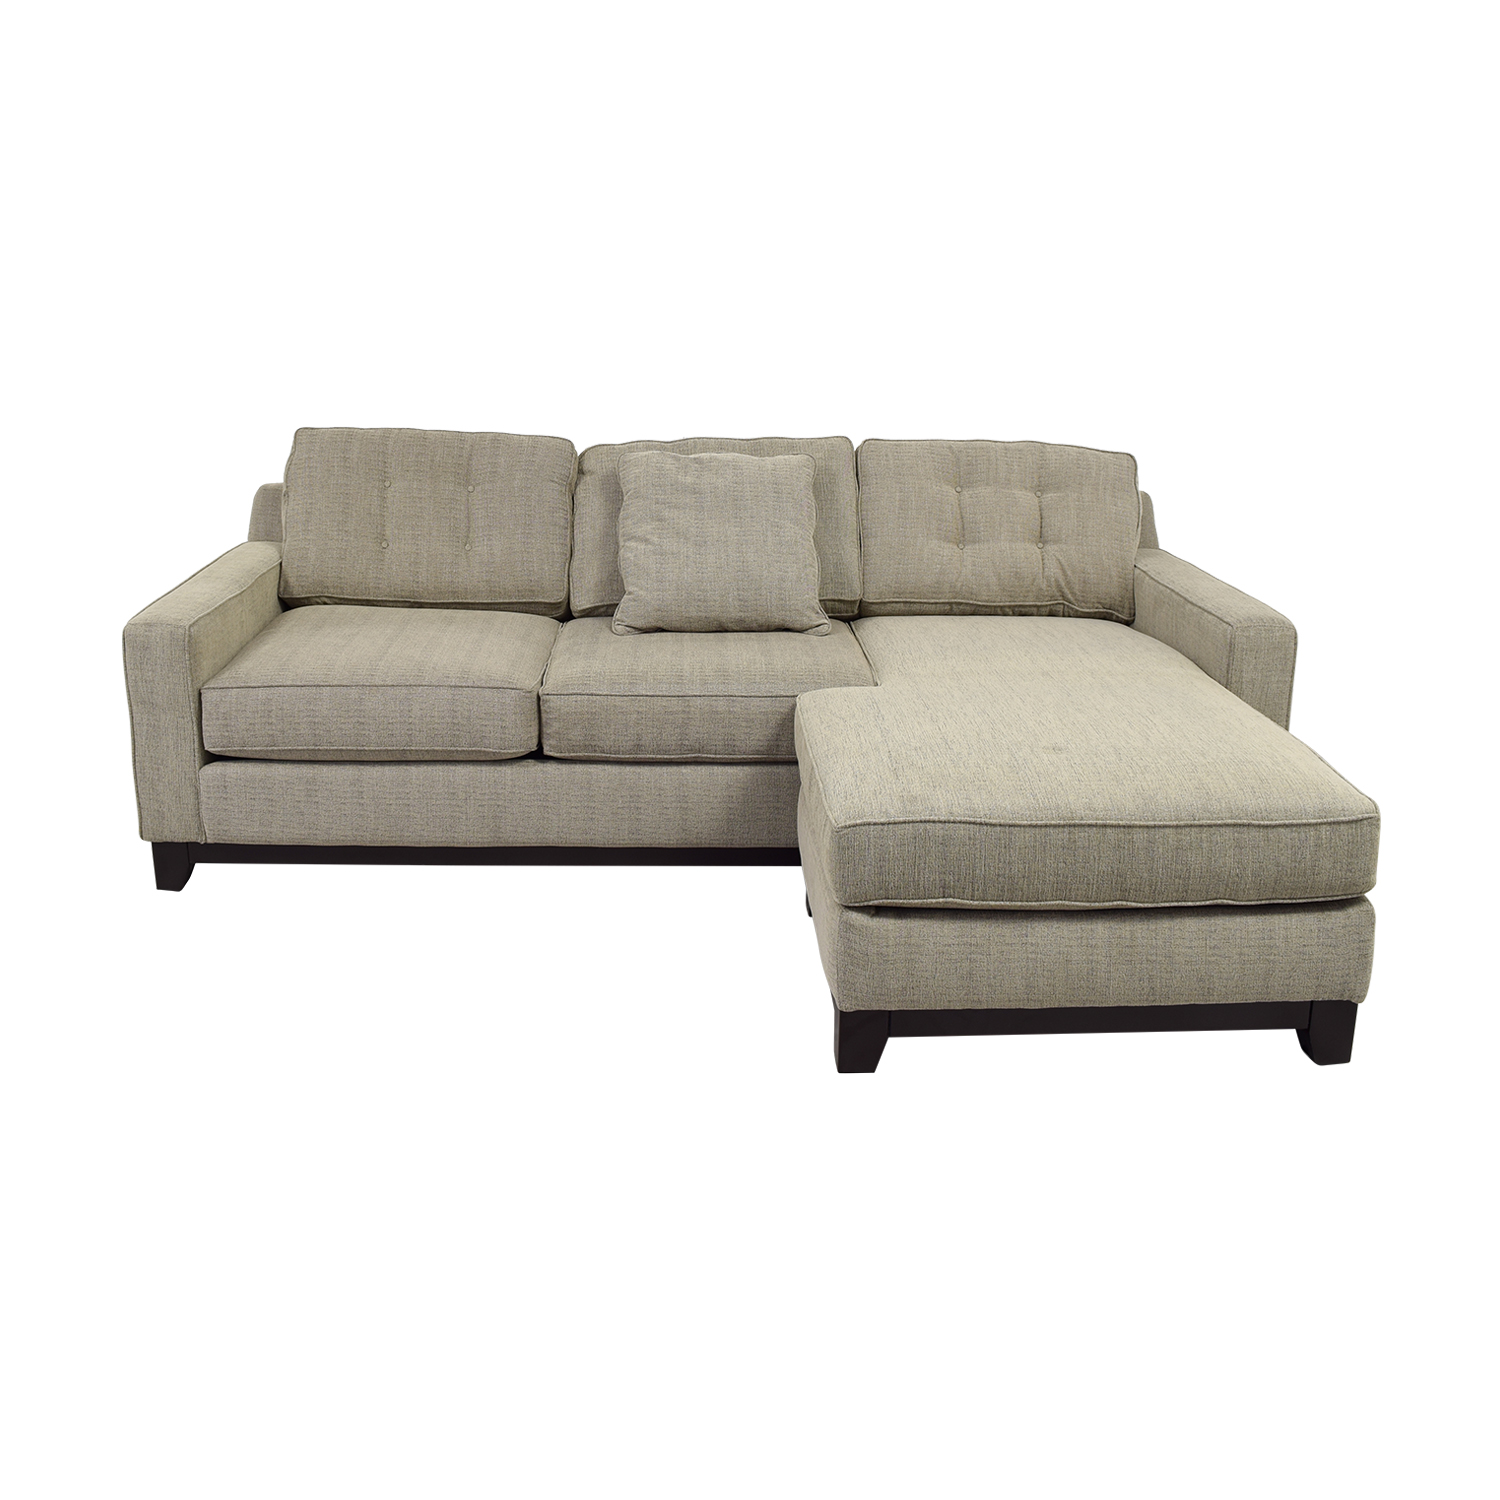 Radley Radley Beige Semi-Tufted Chaise Sectional nyc